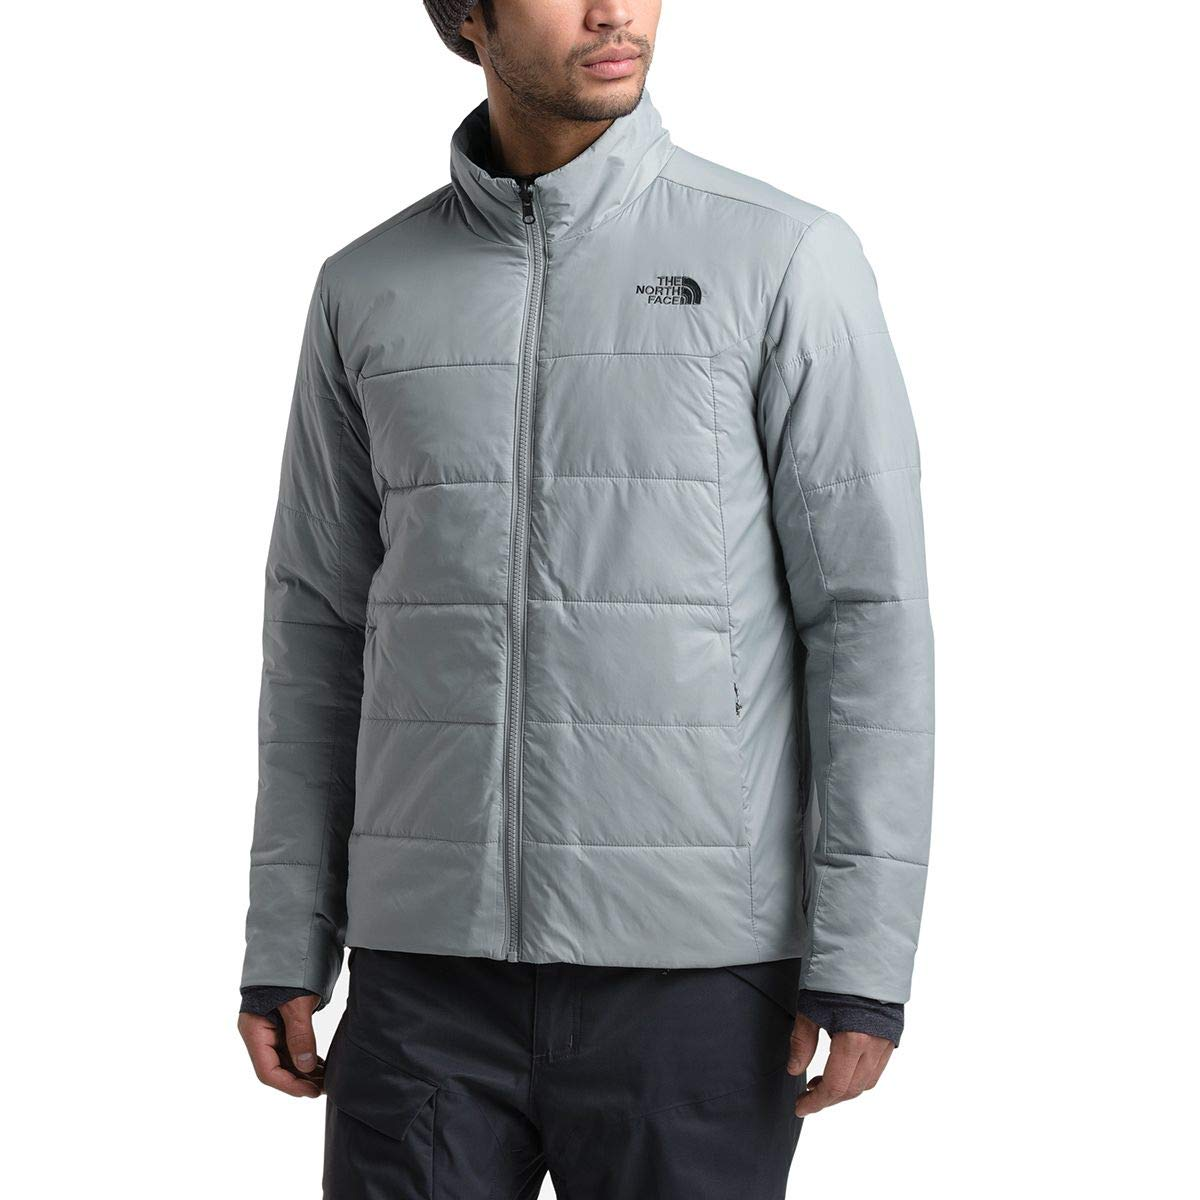 Amazon.com: The North Face Clement Triclimate - Chaqueta ...